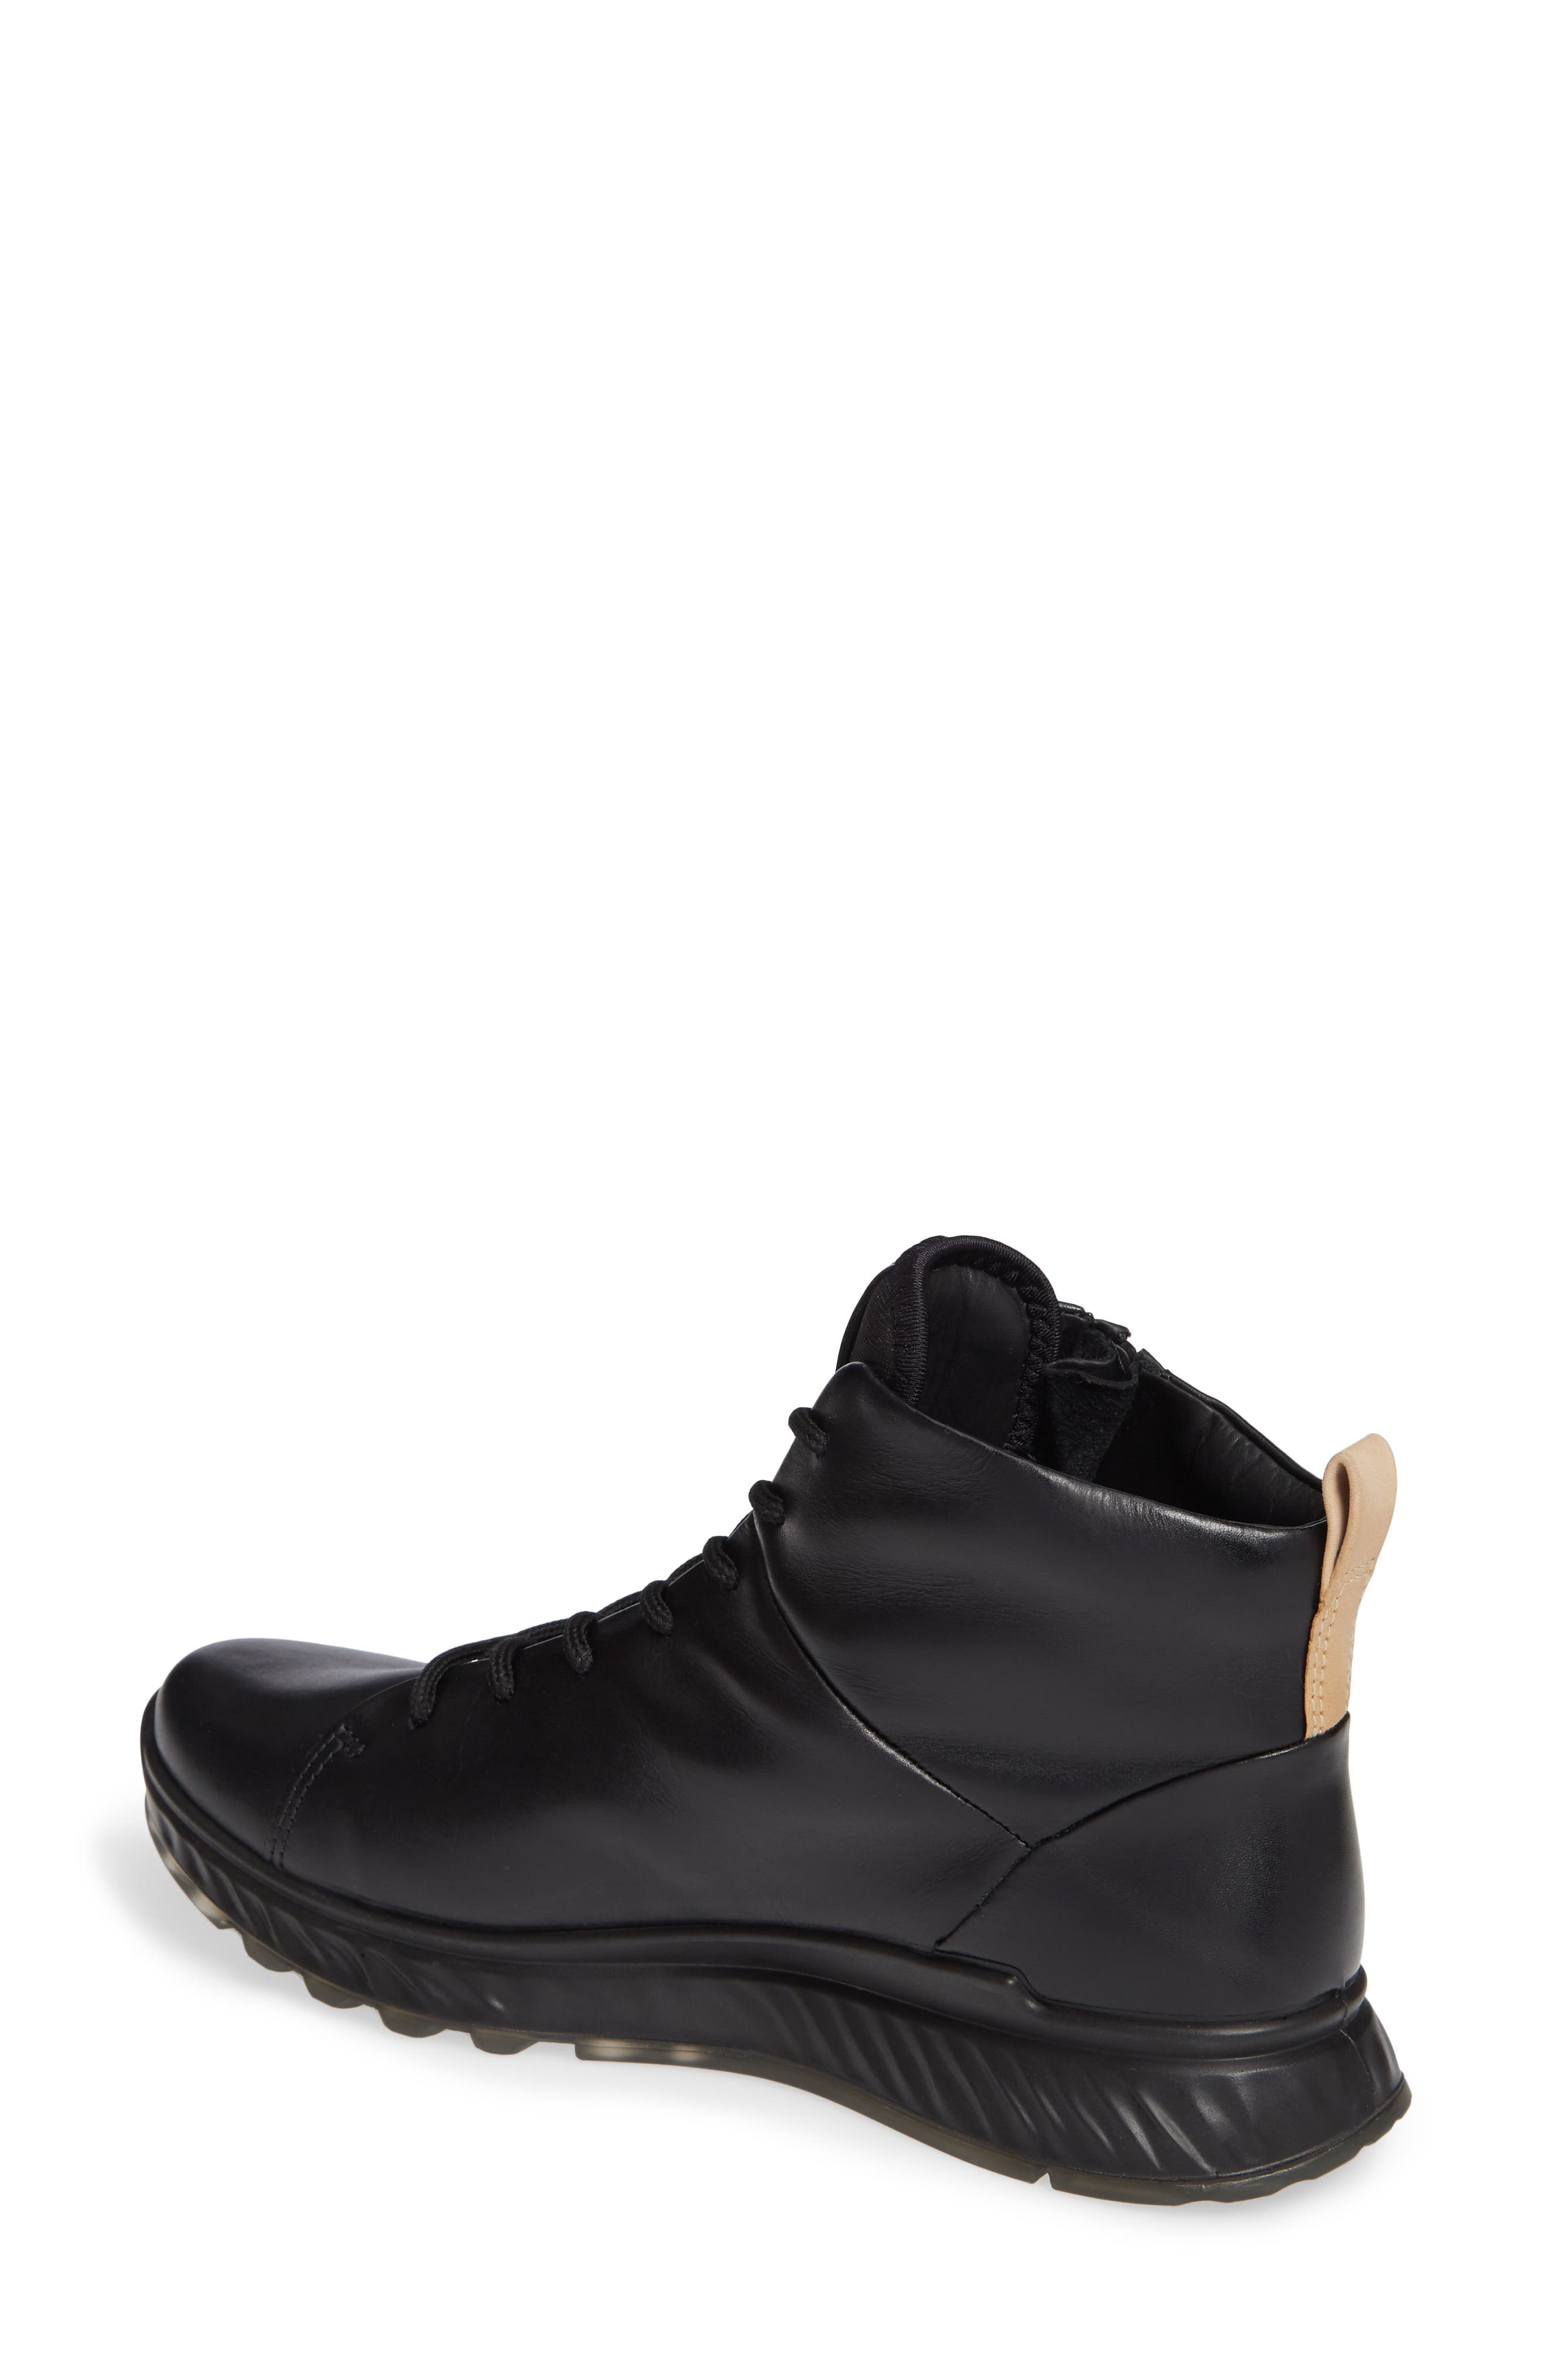 ST1 High Top Sneaker,                             Alternate thumbnail 2, color,                             BLACK LEATHER